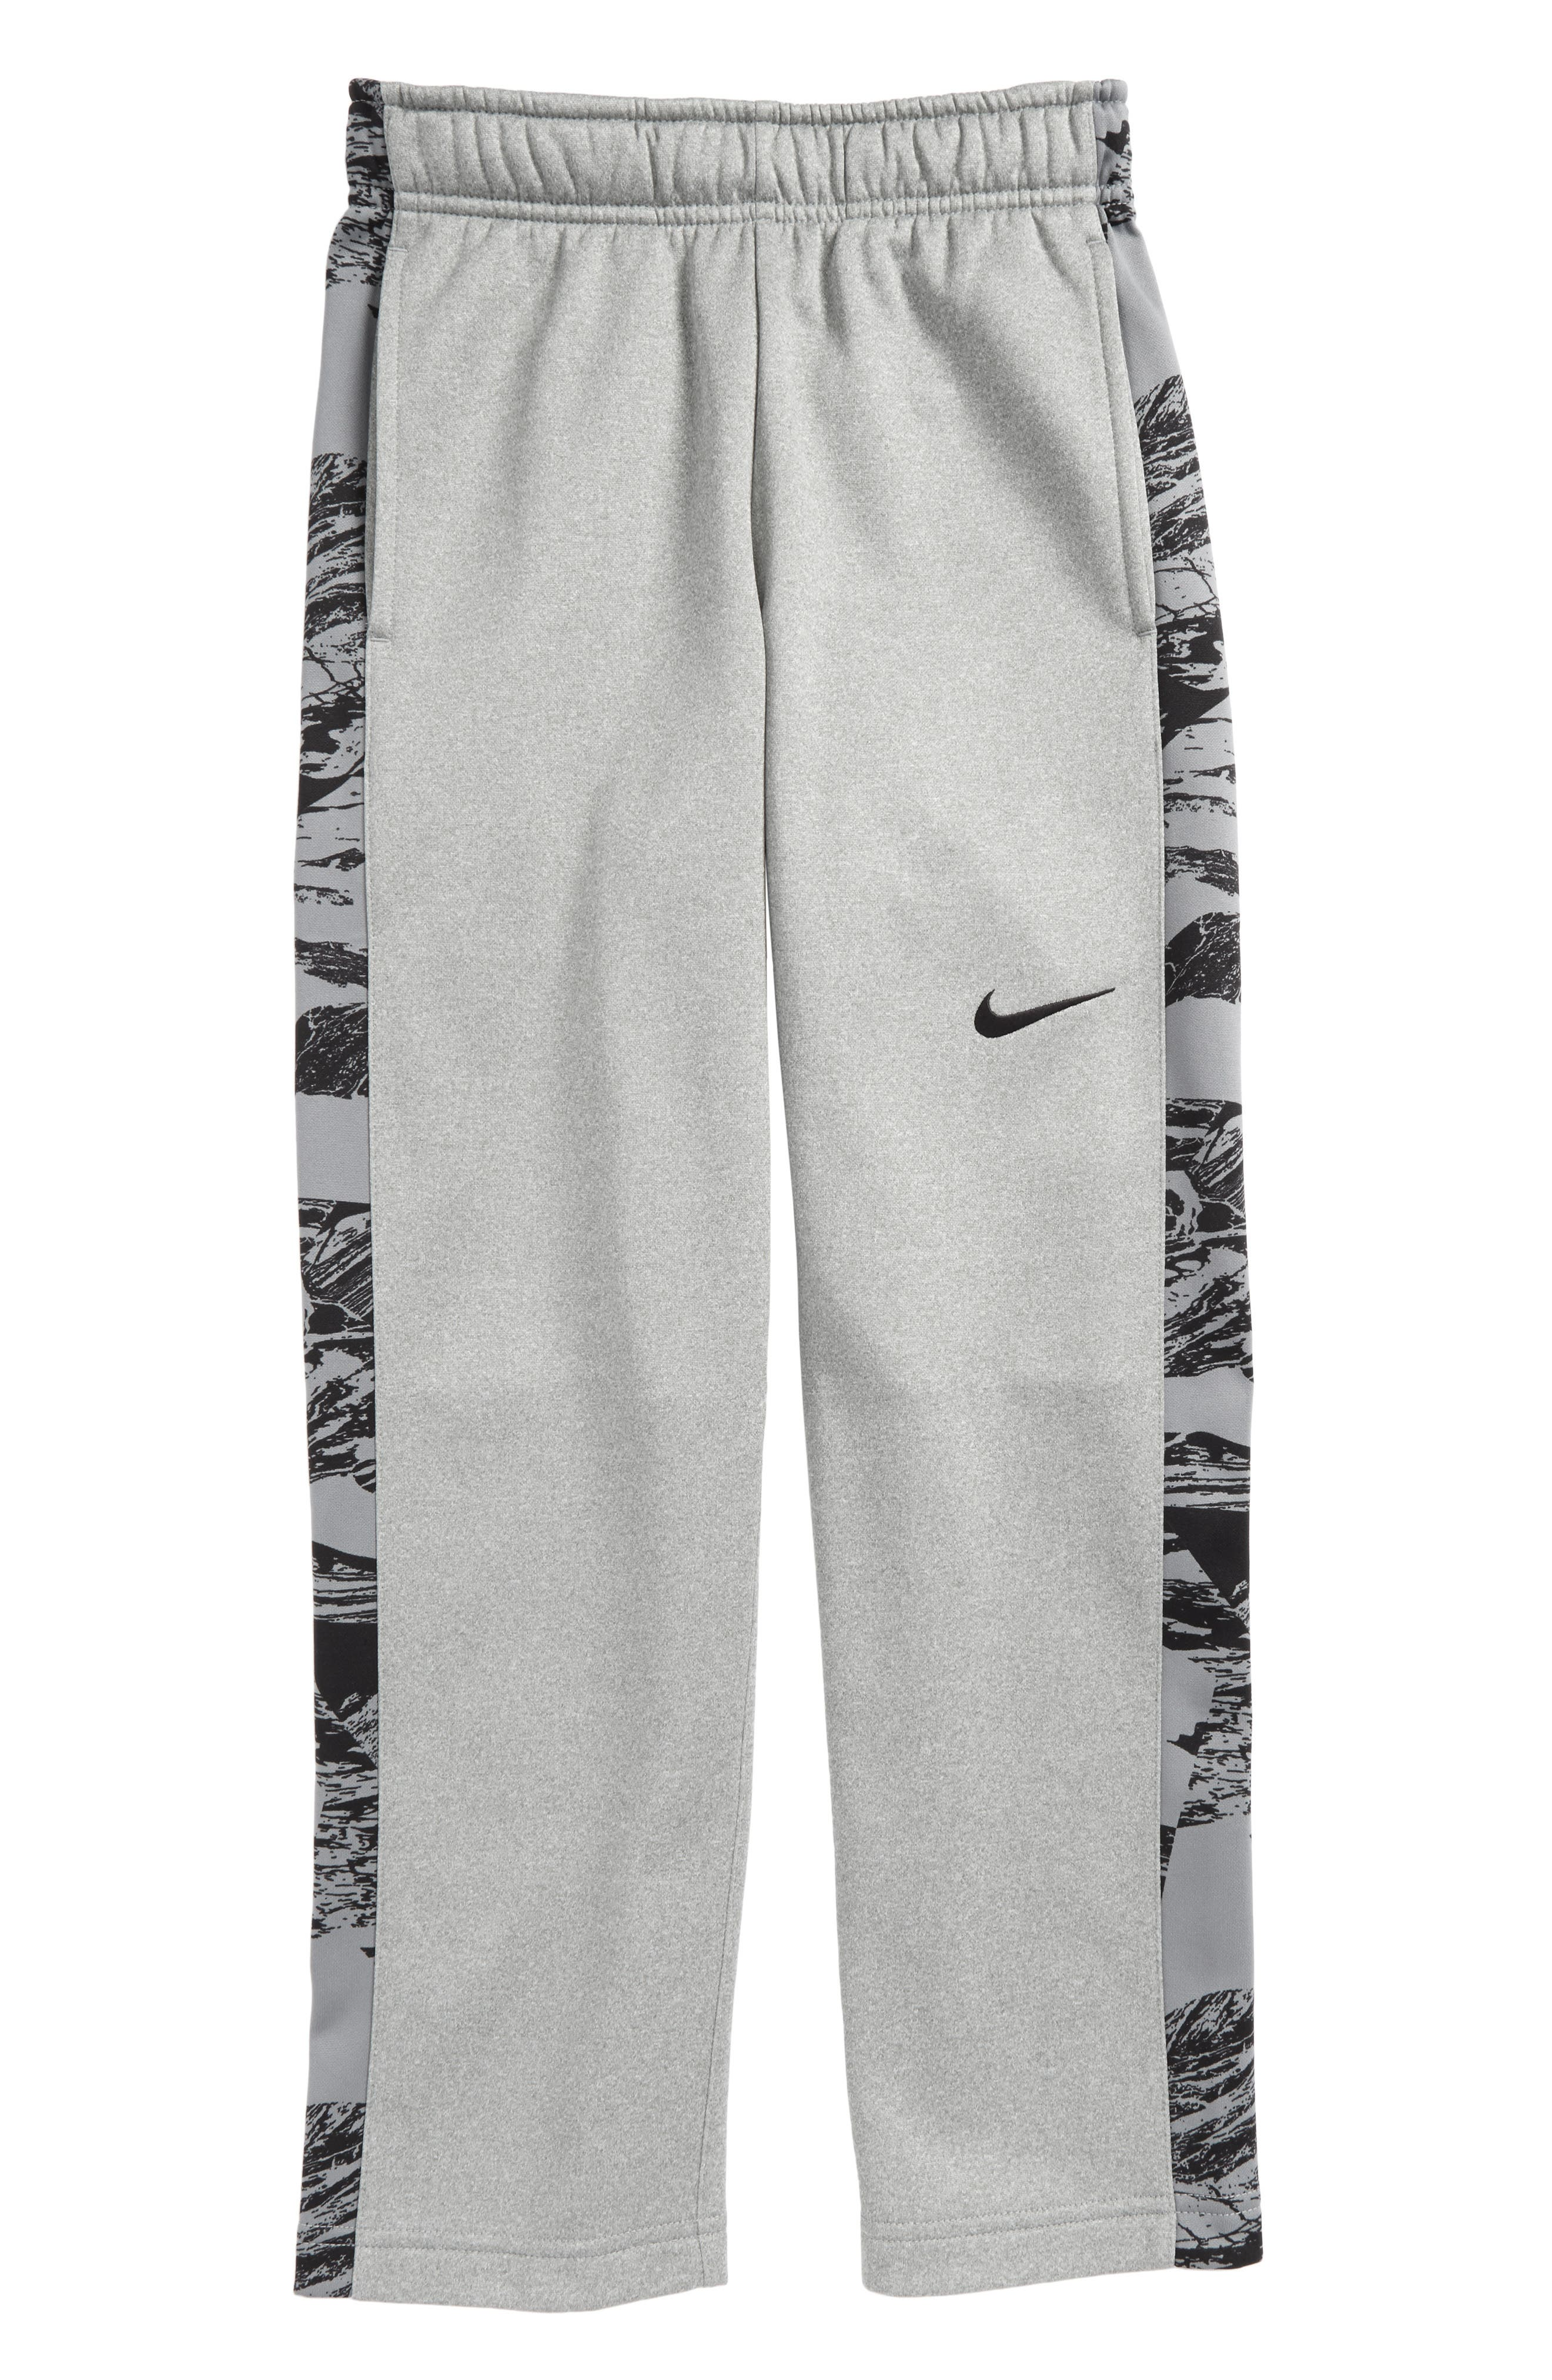 Alternate Image 1 Selected - Nike Therma-FIT Legacy Pants (Little Boys & Big Boys)